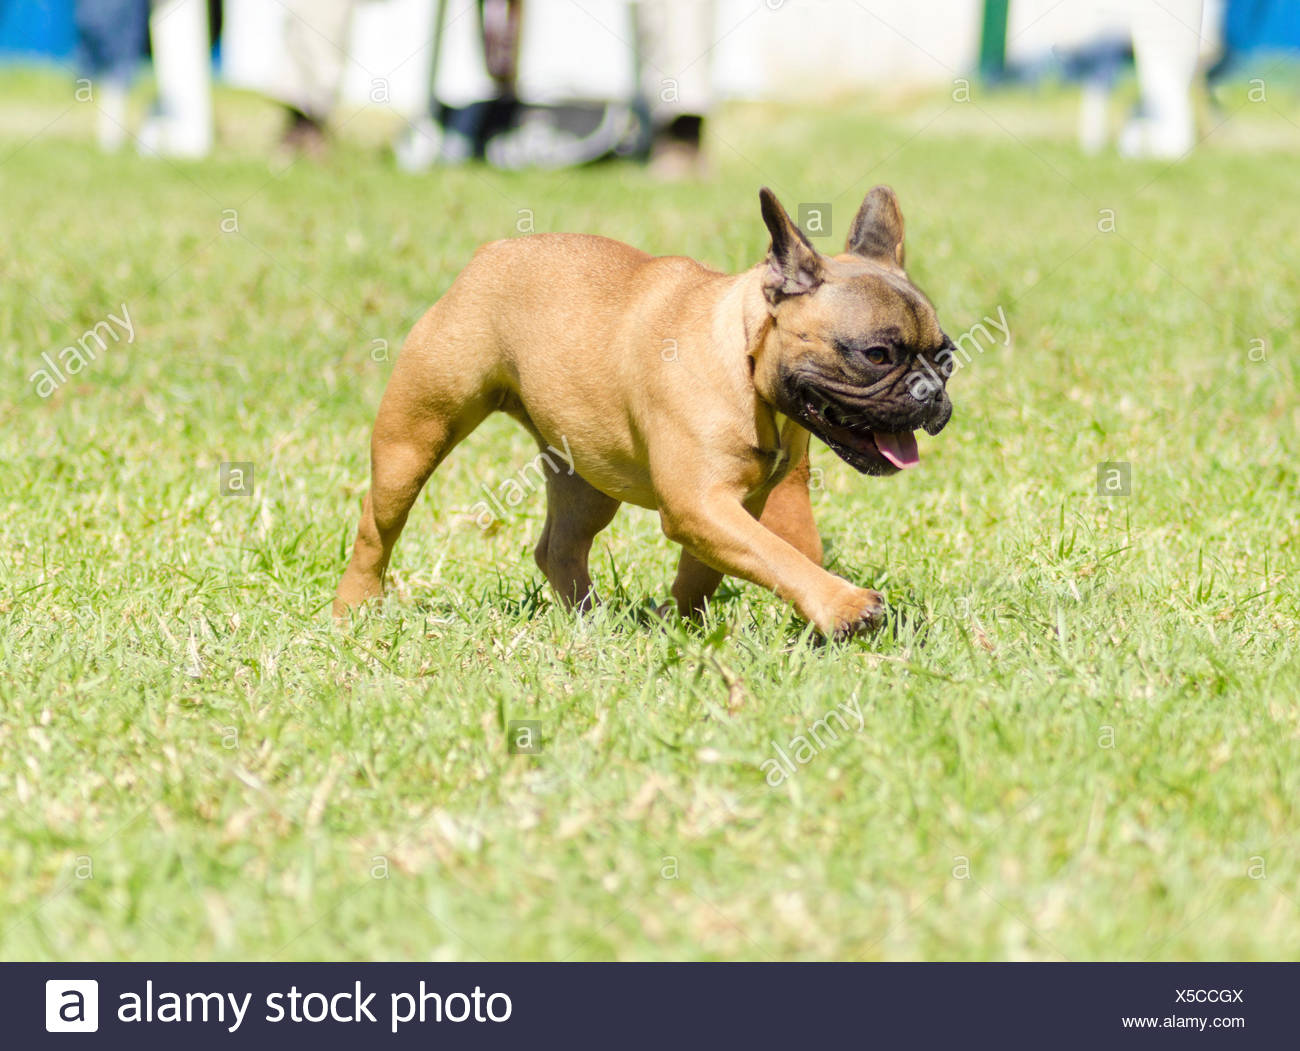 A small,young,beautiful, fawn brown French Bulldog with black mask walking on the grass looking playful and cheerful. It has distinct bat ears, short face and they are good companion dogs. Stock Photo